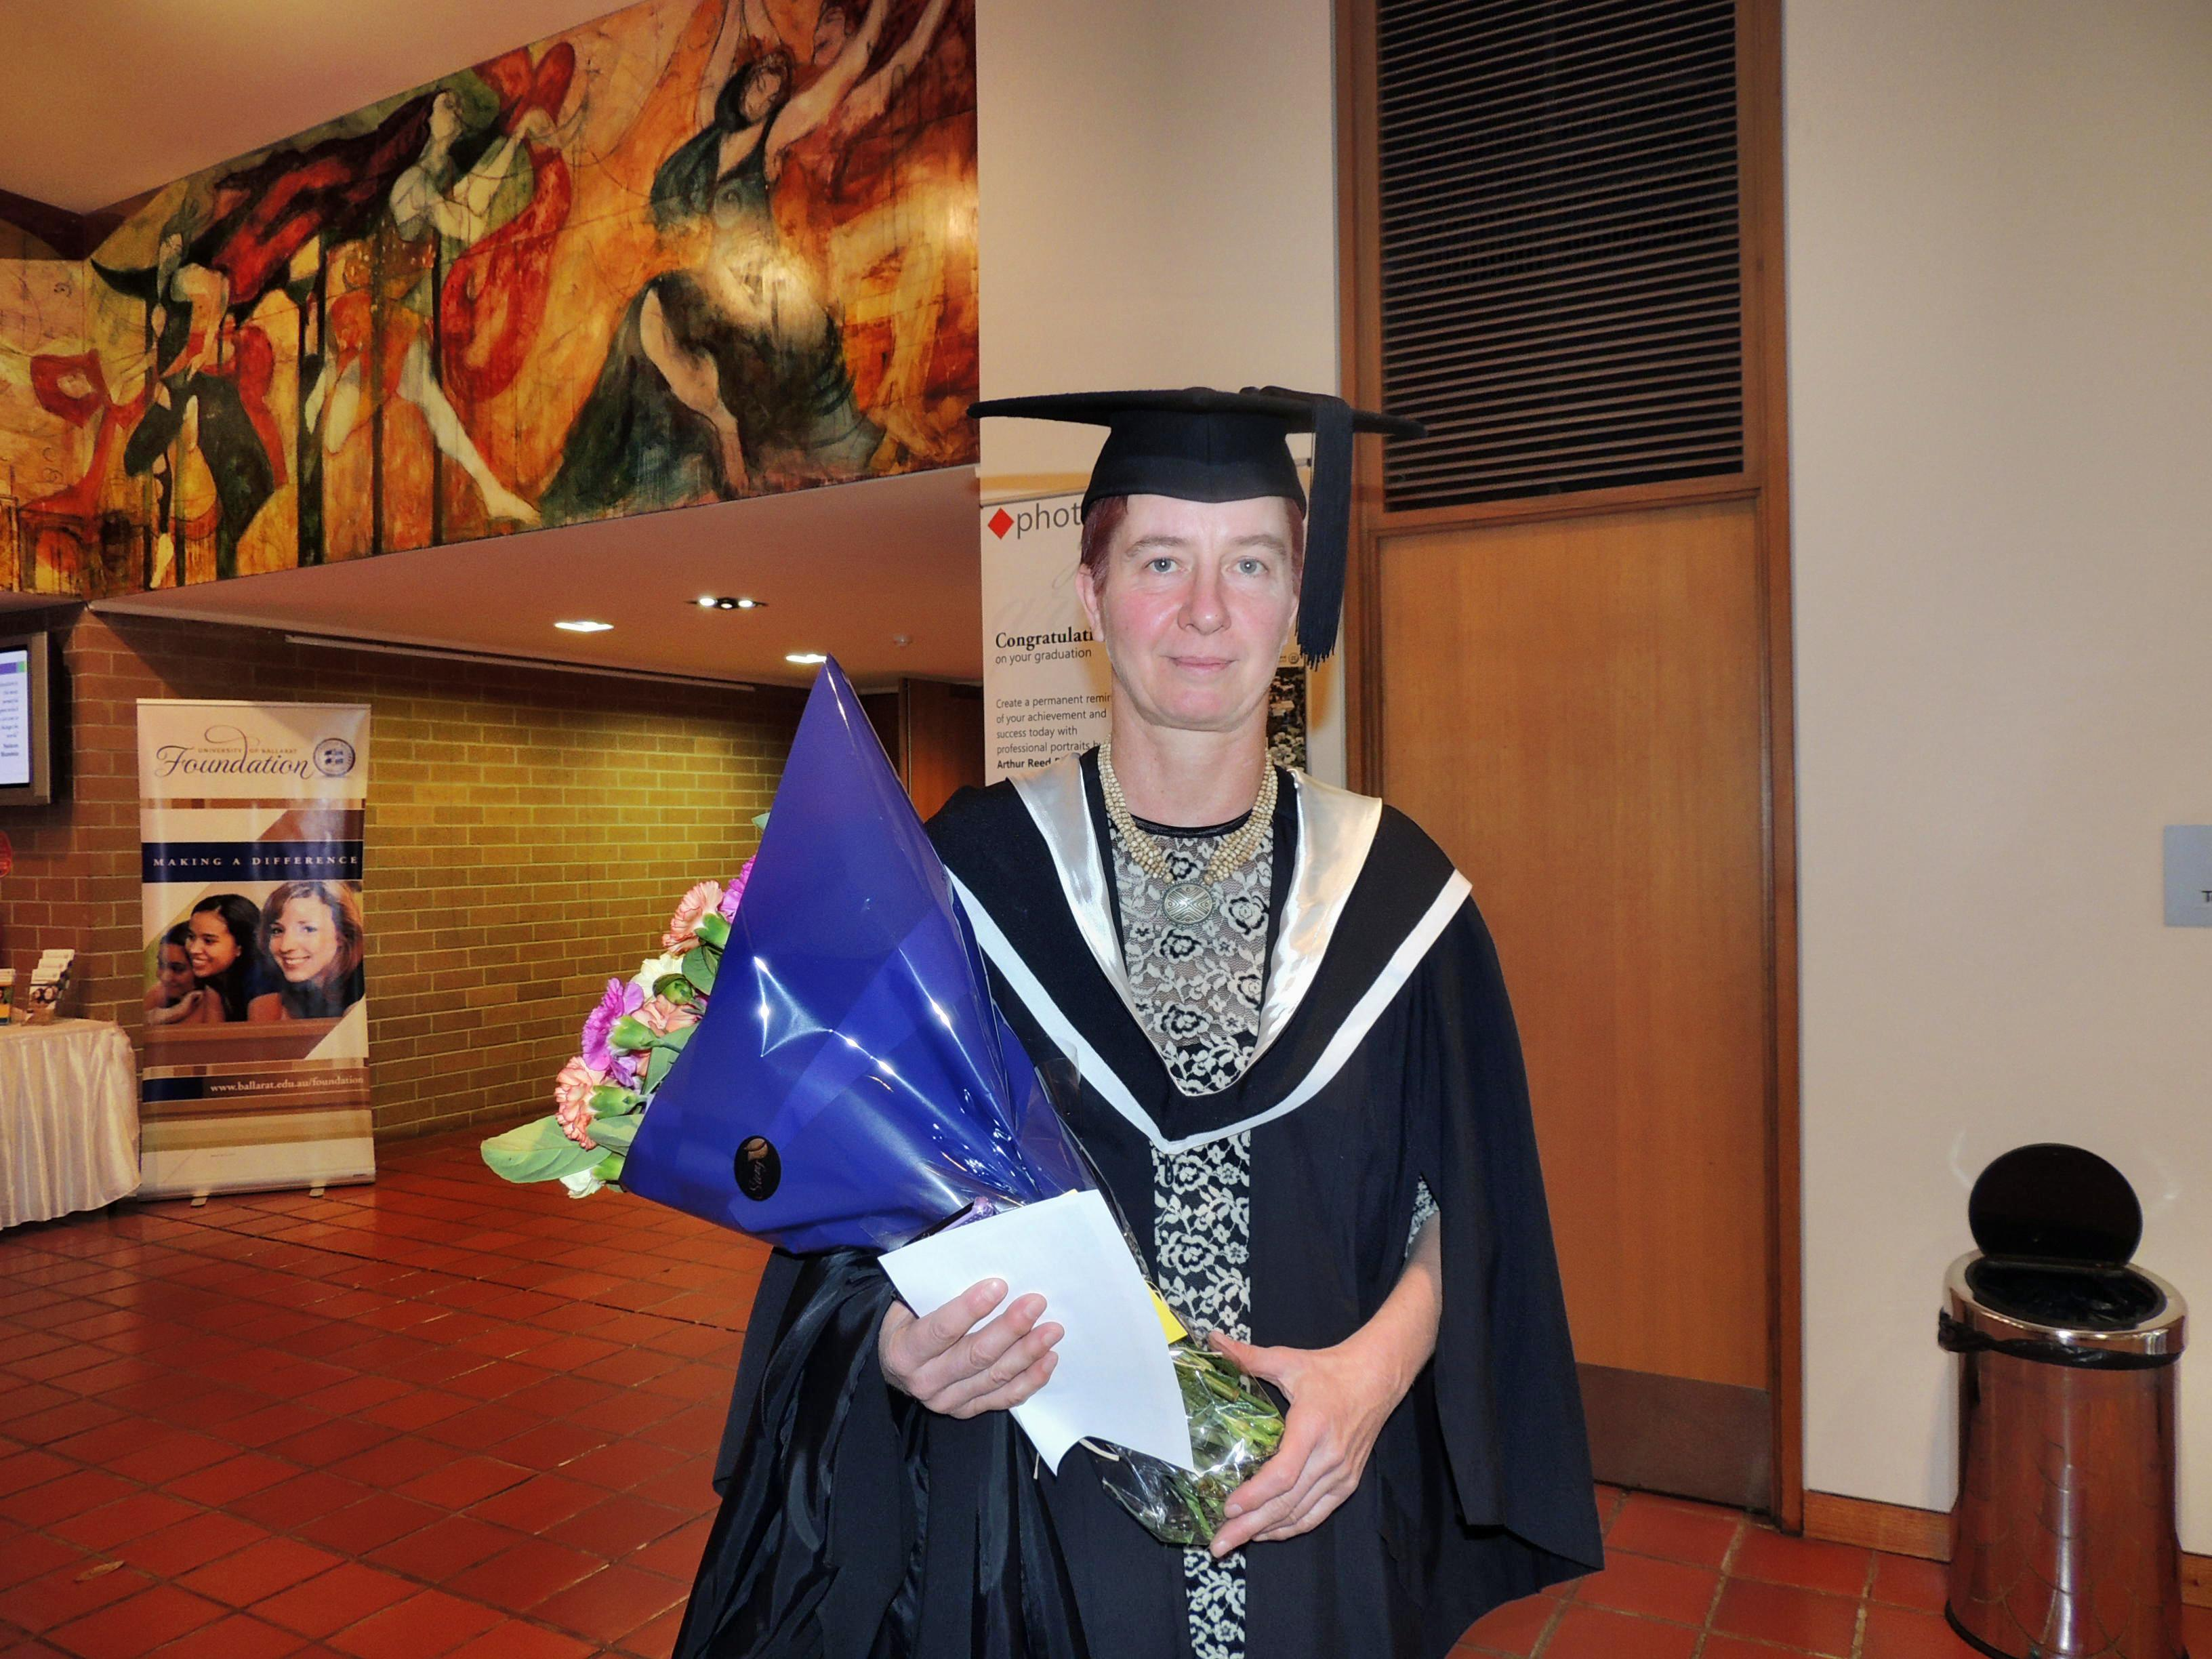 Chris-Graduation-001.jpeg